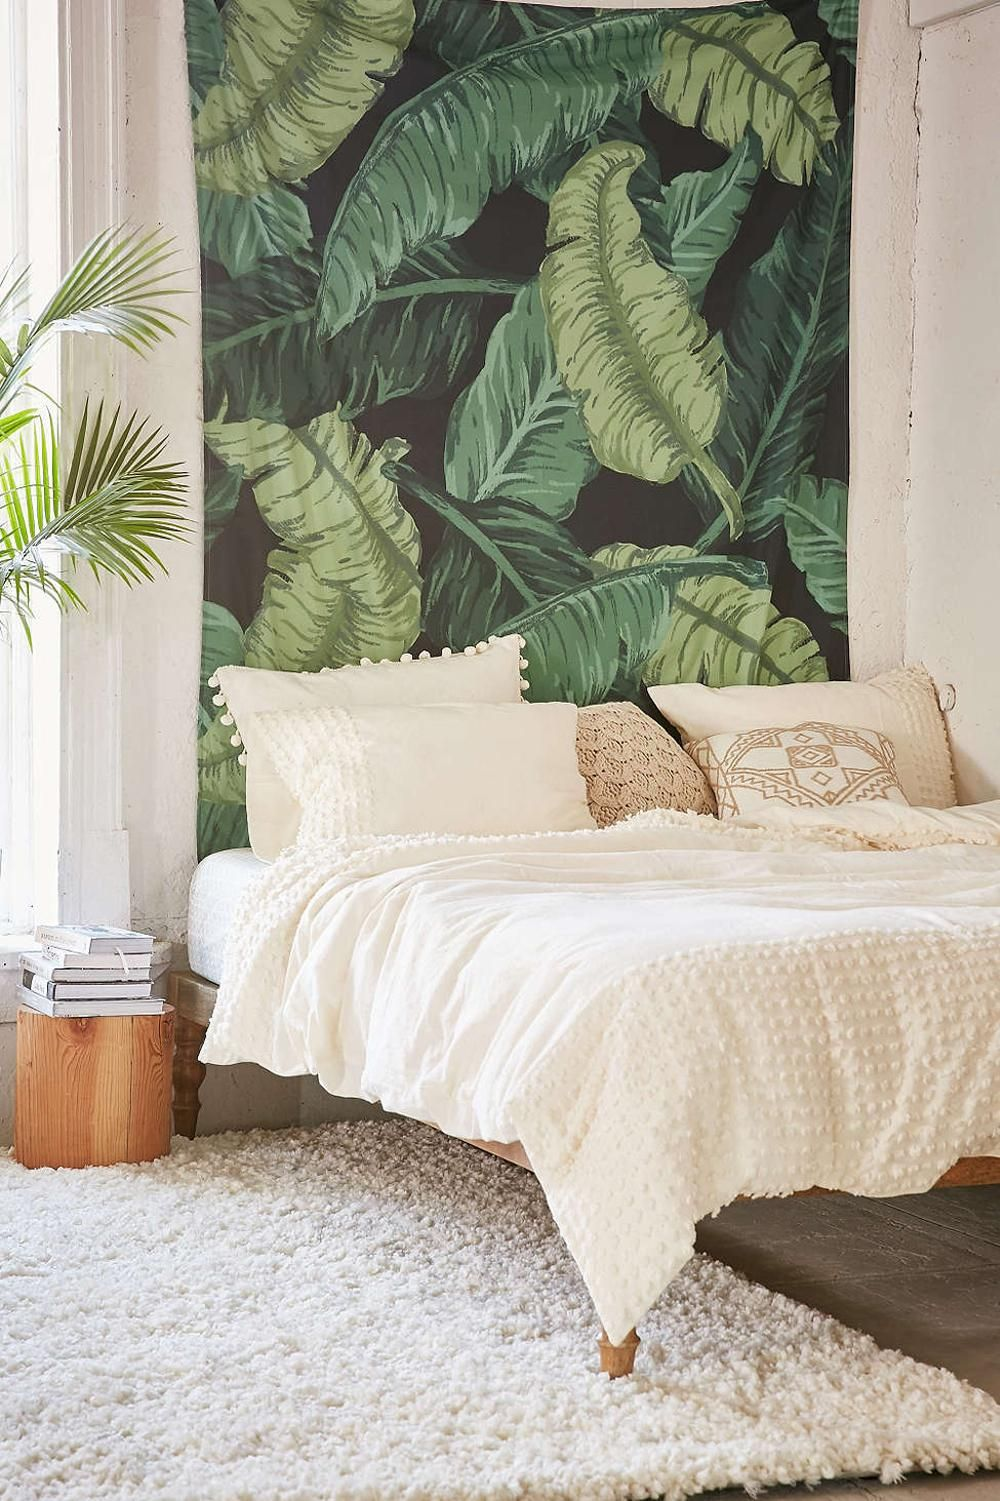 10 stylish ways to bring your blank walls to life in 2019   bedroom on tropical bedroom design, tropical room ideas, tropical romantic bedroom ideas, tropical master bedroom ideas, bright wall art ideas, tropical bedroom color ideas, tropical furniture ideas, tropical diy ideas, tropical style bedroom, tropical kitchen ideas, tropical bedroom decor, tropical bathroom ideas, over bed wall art ideas, adult safari themed bedroom ideas, beach bedroom ideas, tropical bedroom paint, tropical bedroom curtains, tropical bedding ideas, vintage girl bedroom ideas, exotic bedroom ideas,